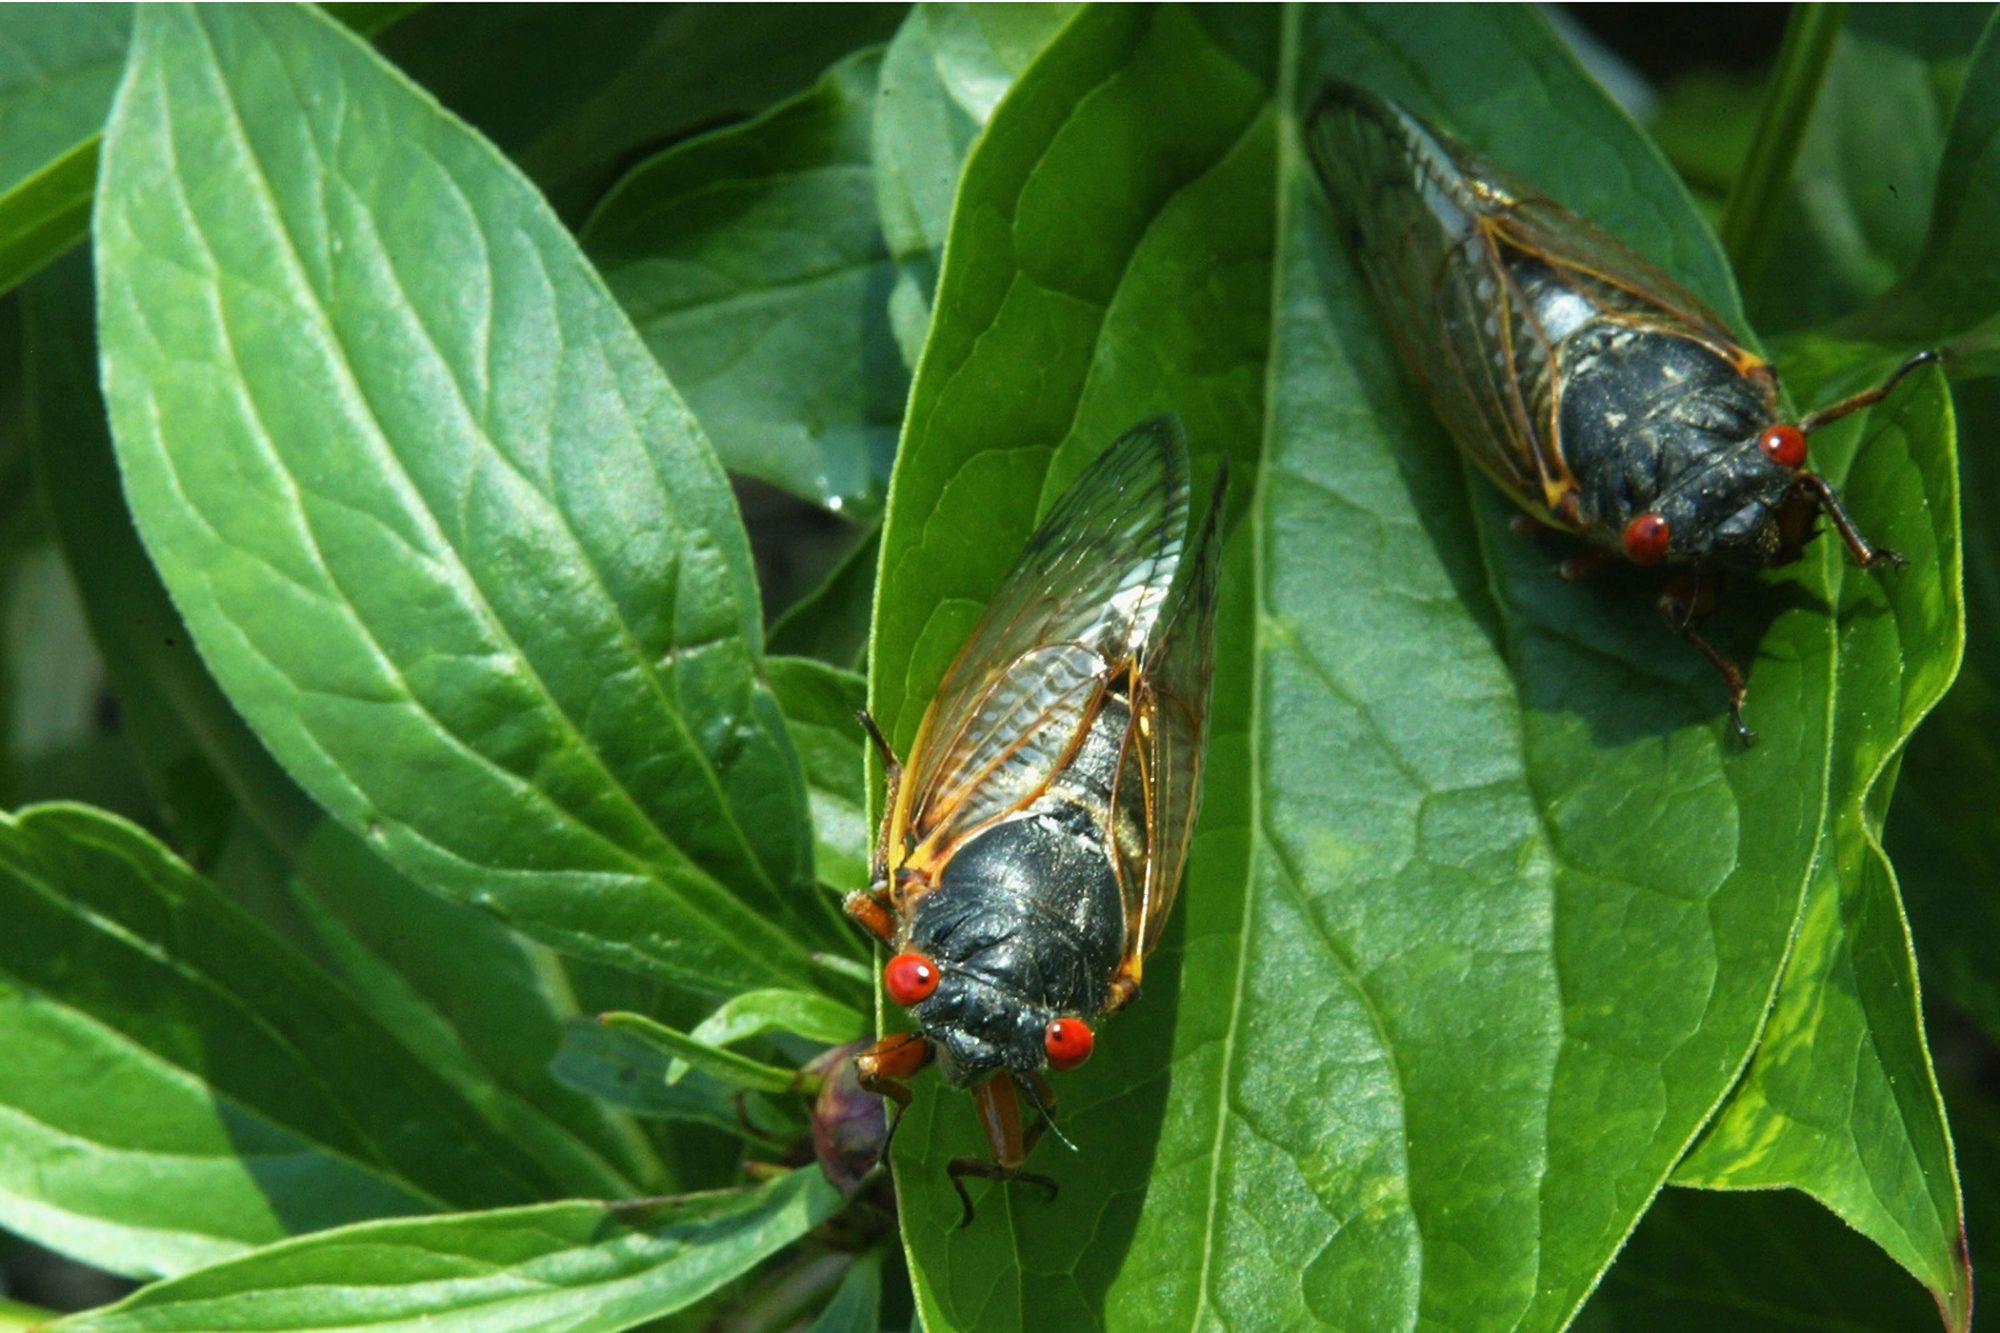 two Brood X cicadas sitting on green leaves